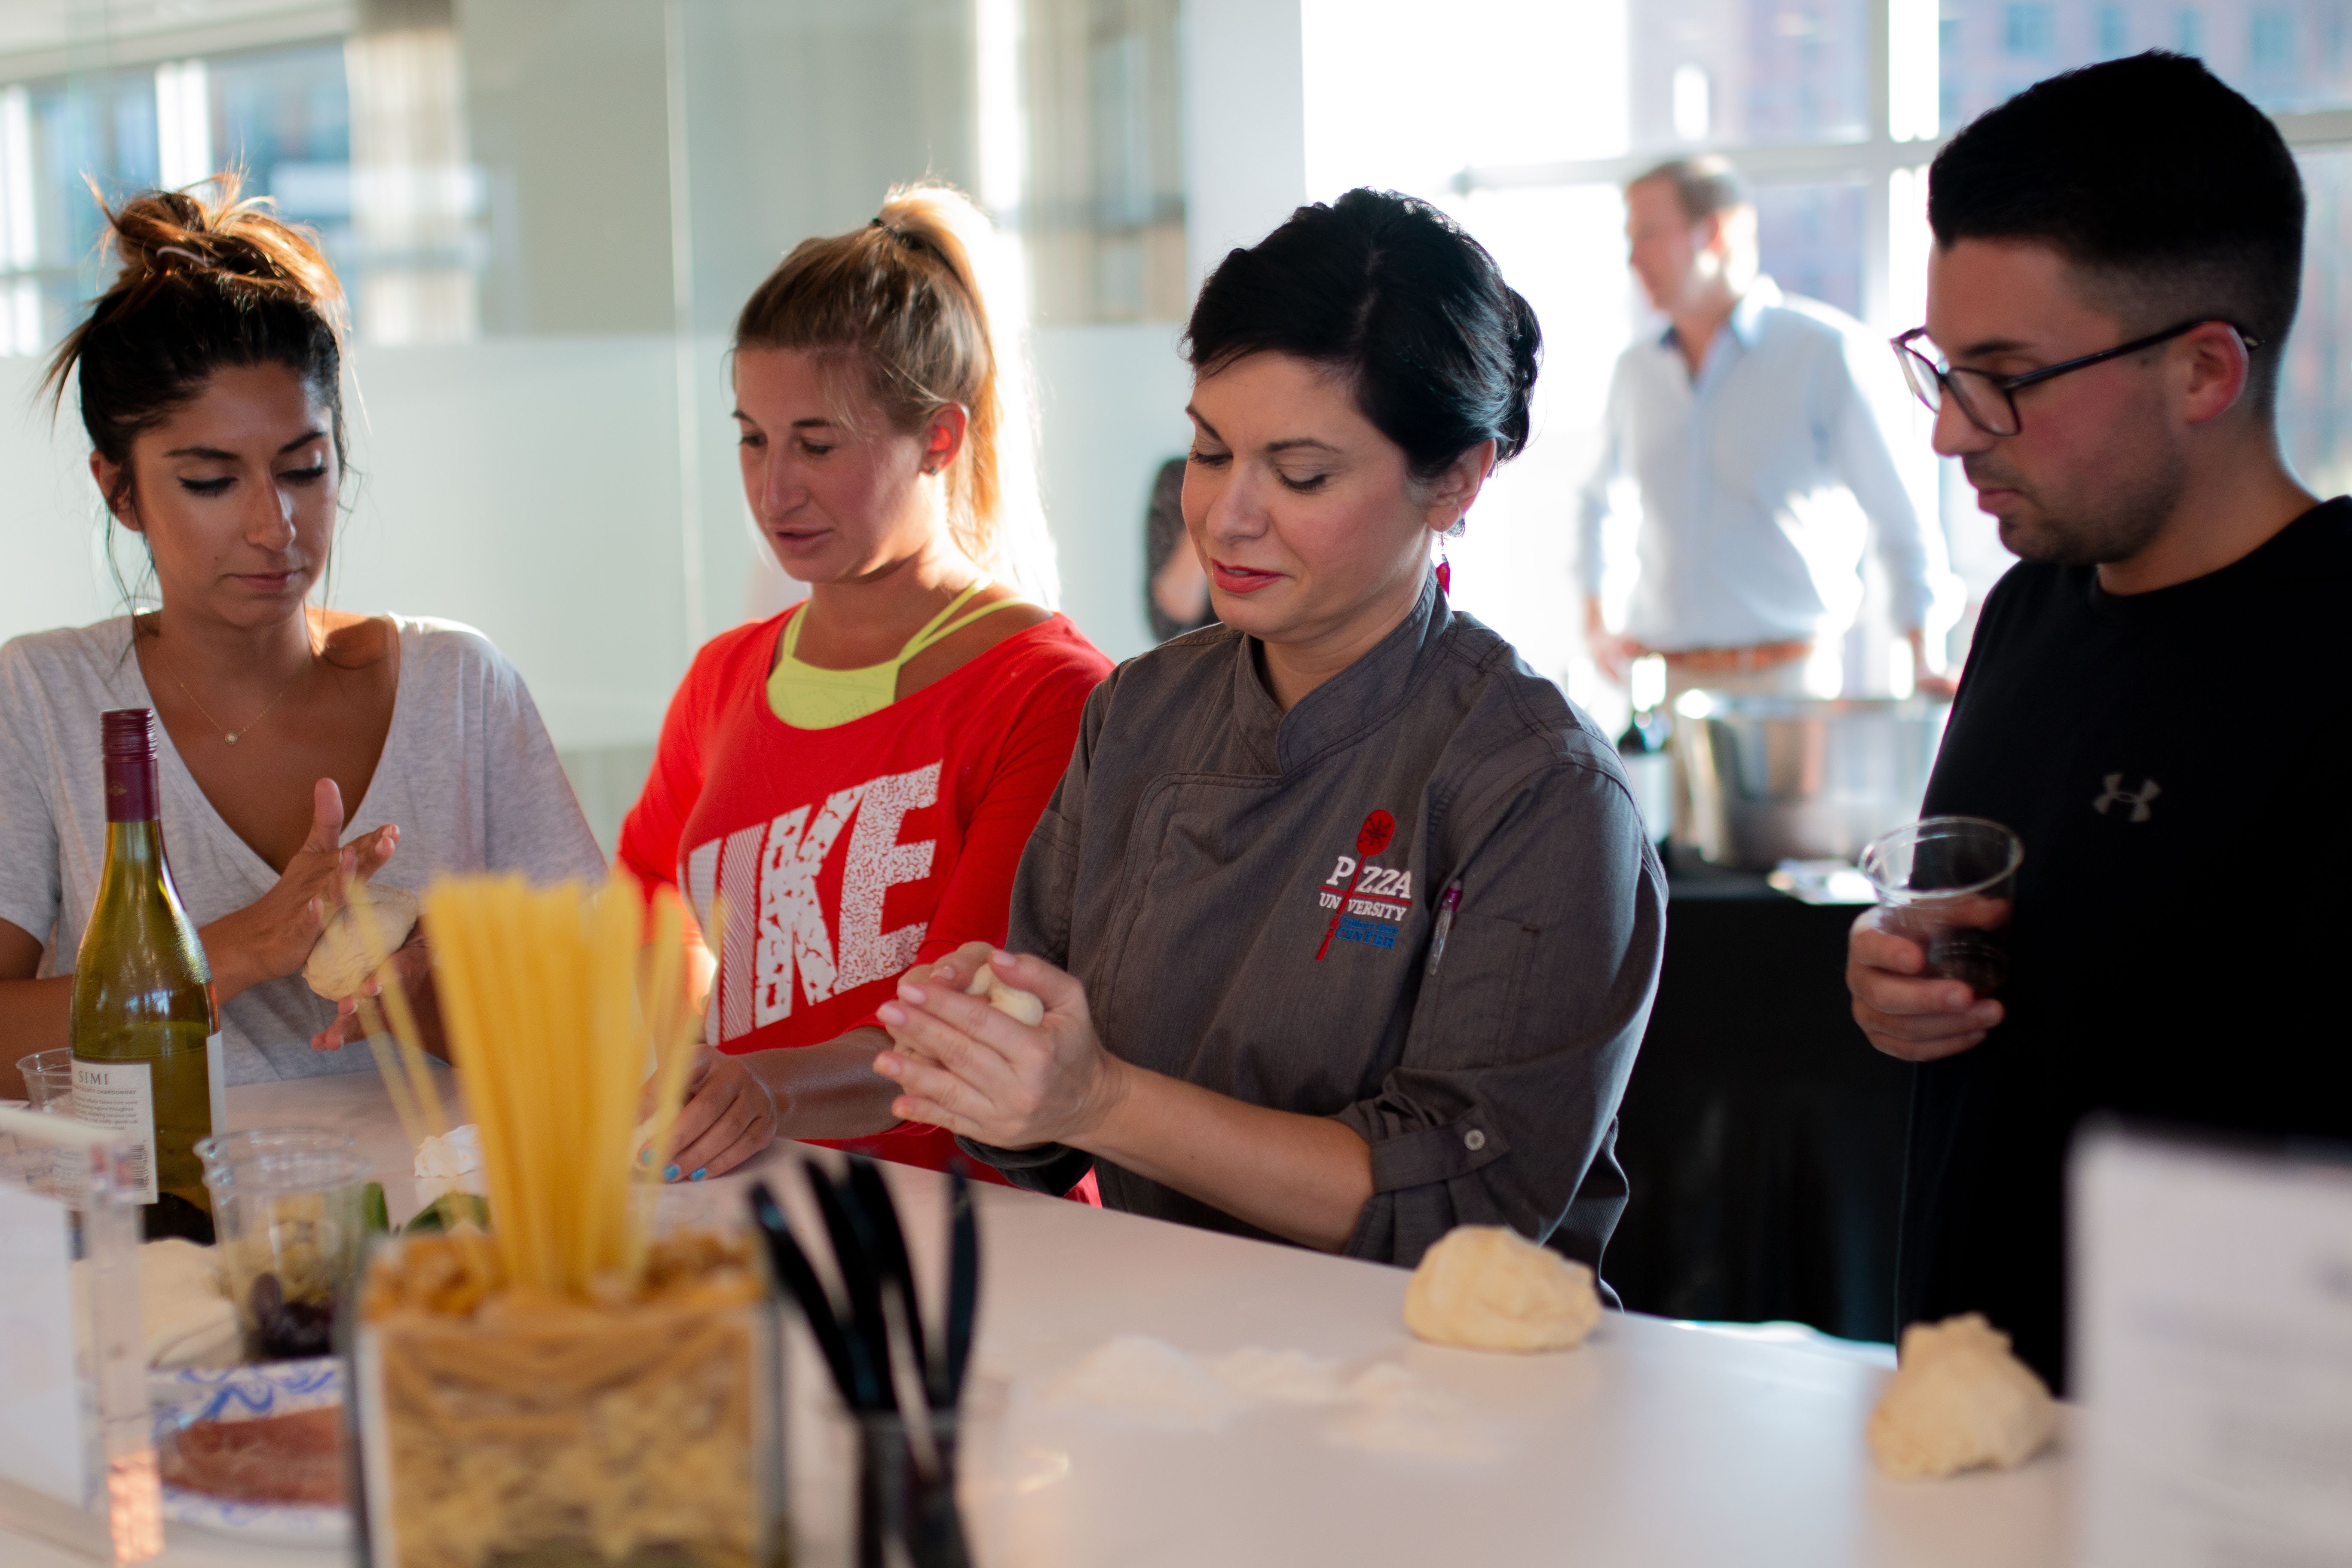 Cooking-Demo-Food-Kitchen-Pizza-The-Collective